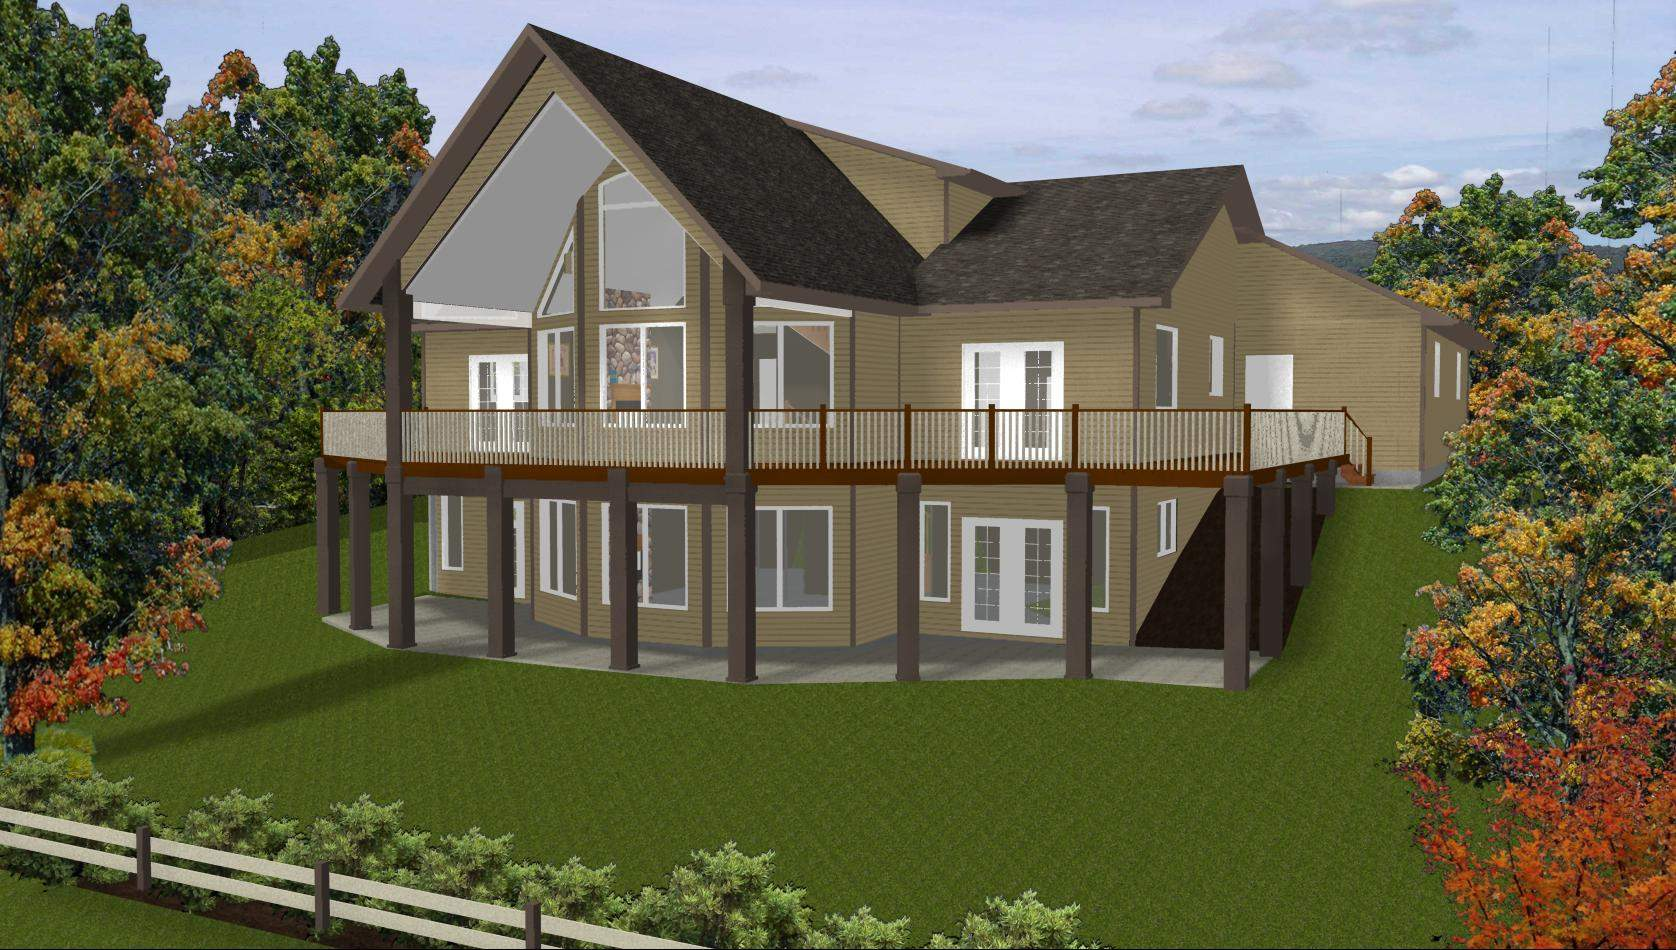 Exposed Basement House Plans Walkout